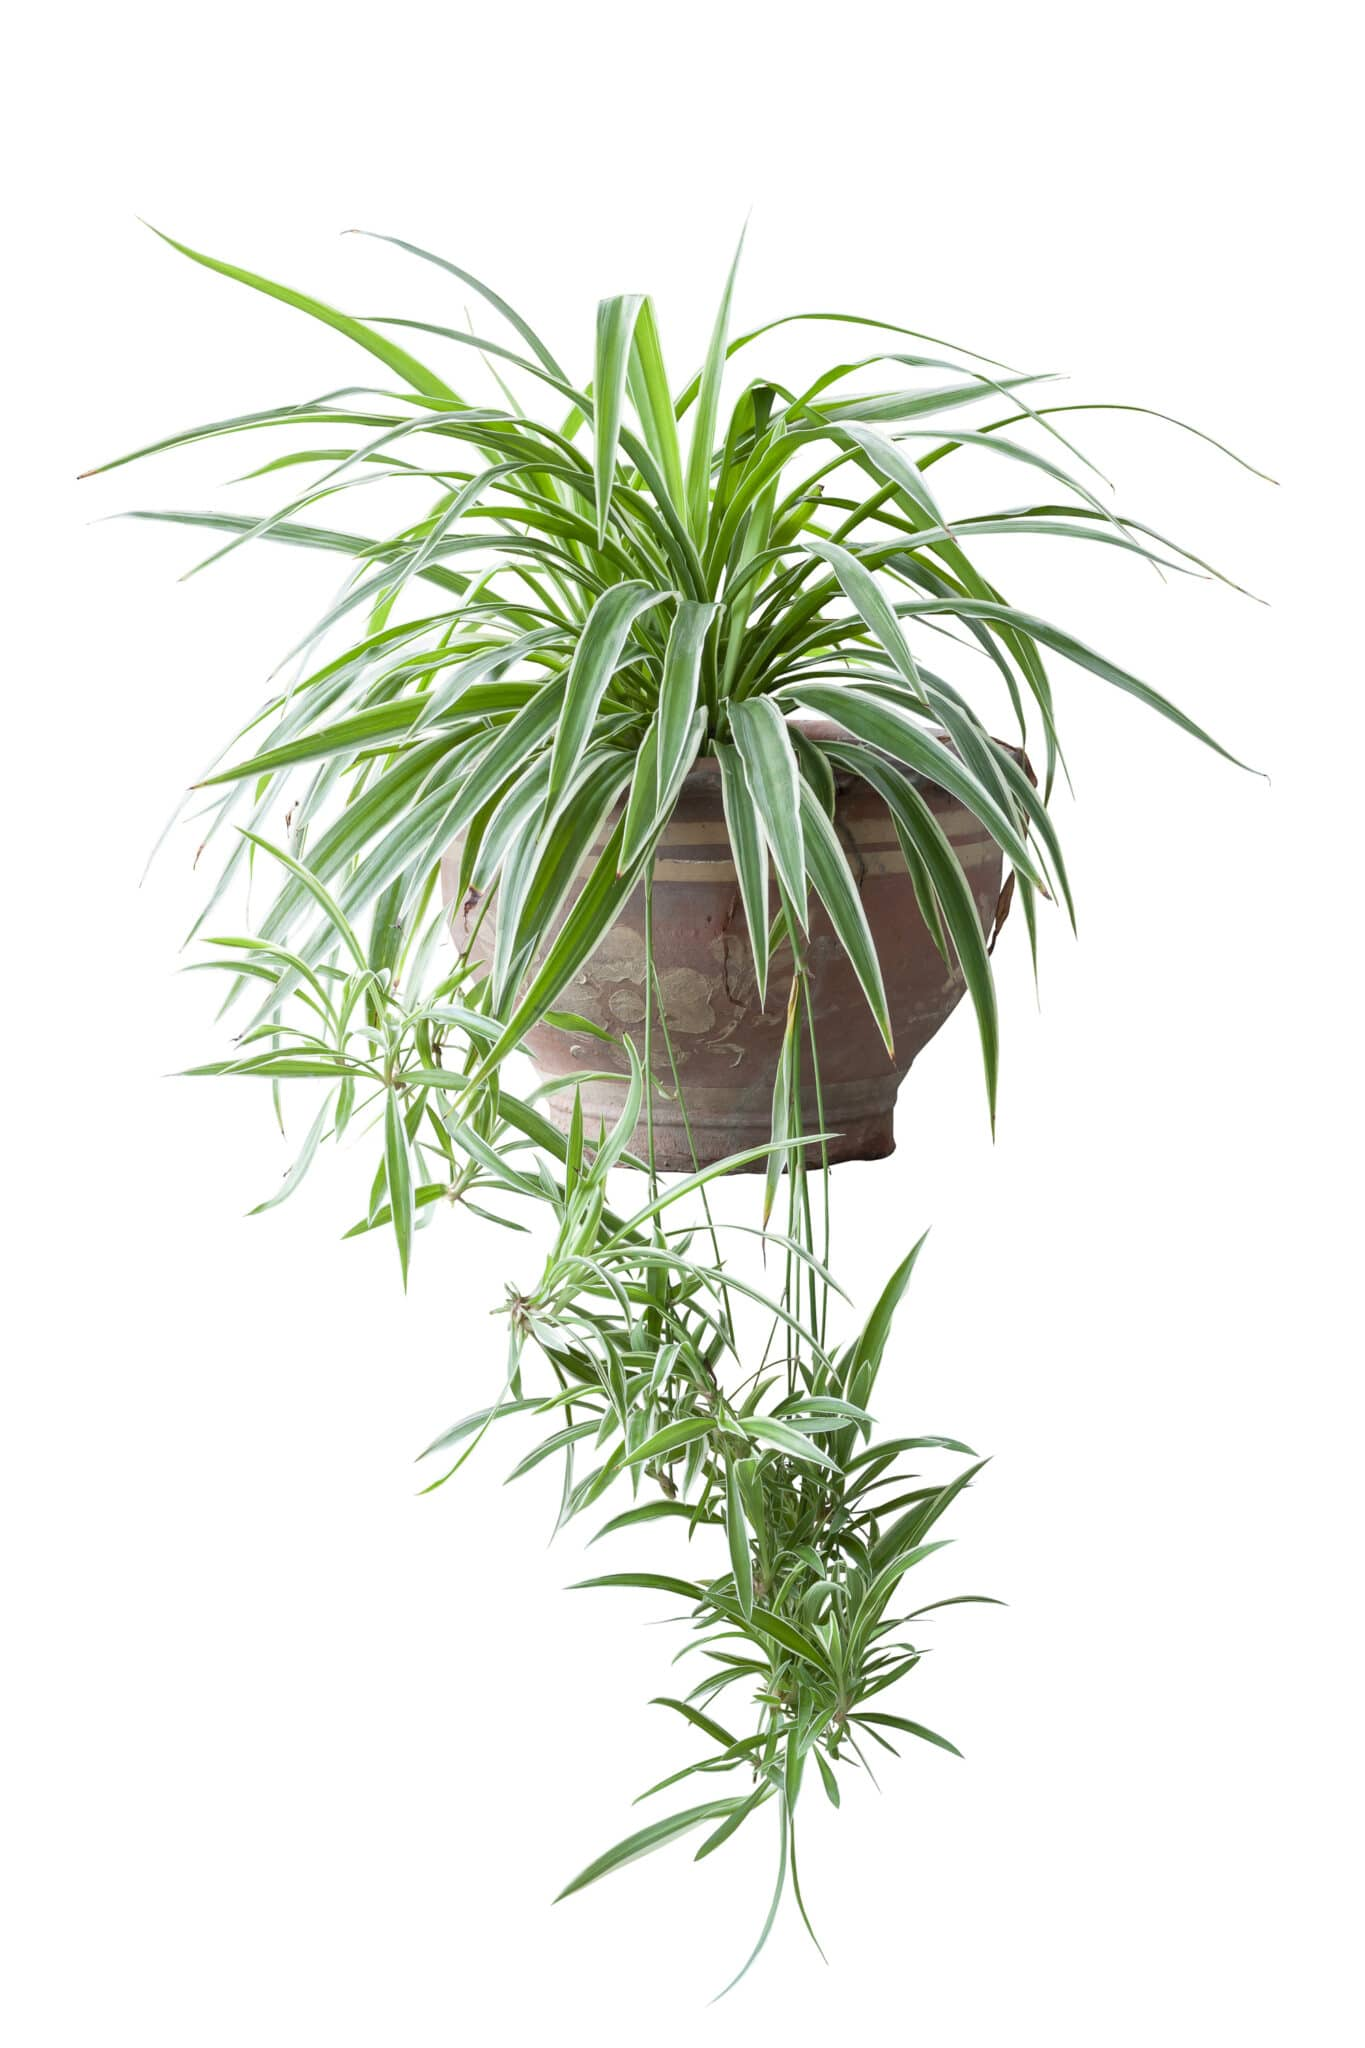 A spider plant with a vine hanging down.